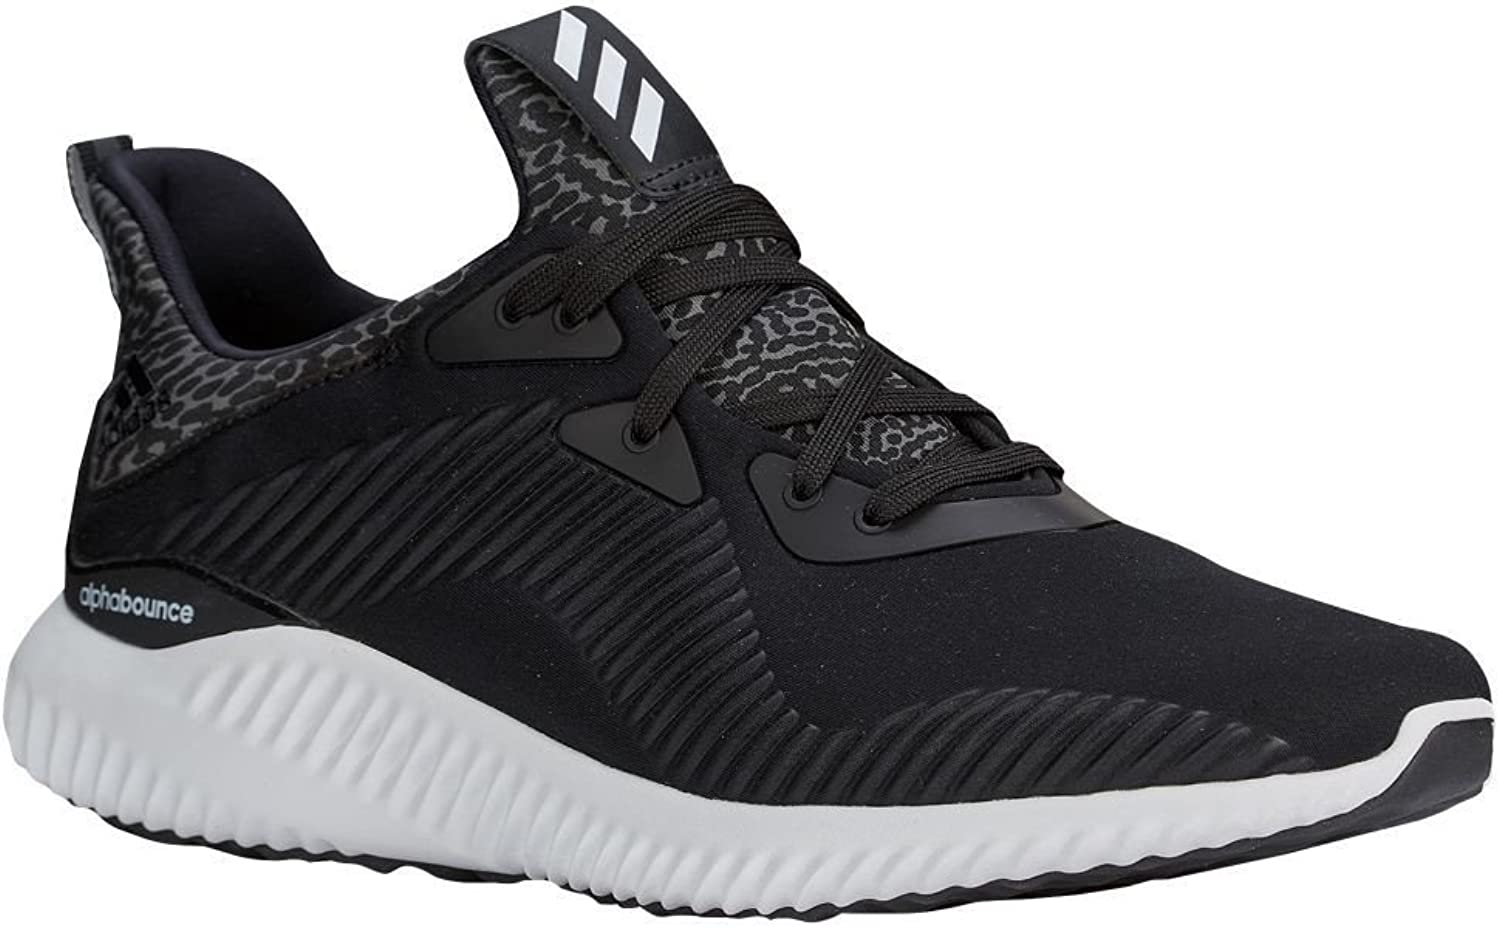 Adidas Men's Alphabounce Running shoes Black White Size 12.5 M US